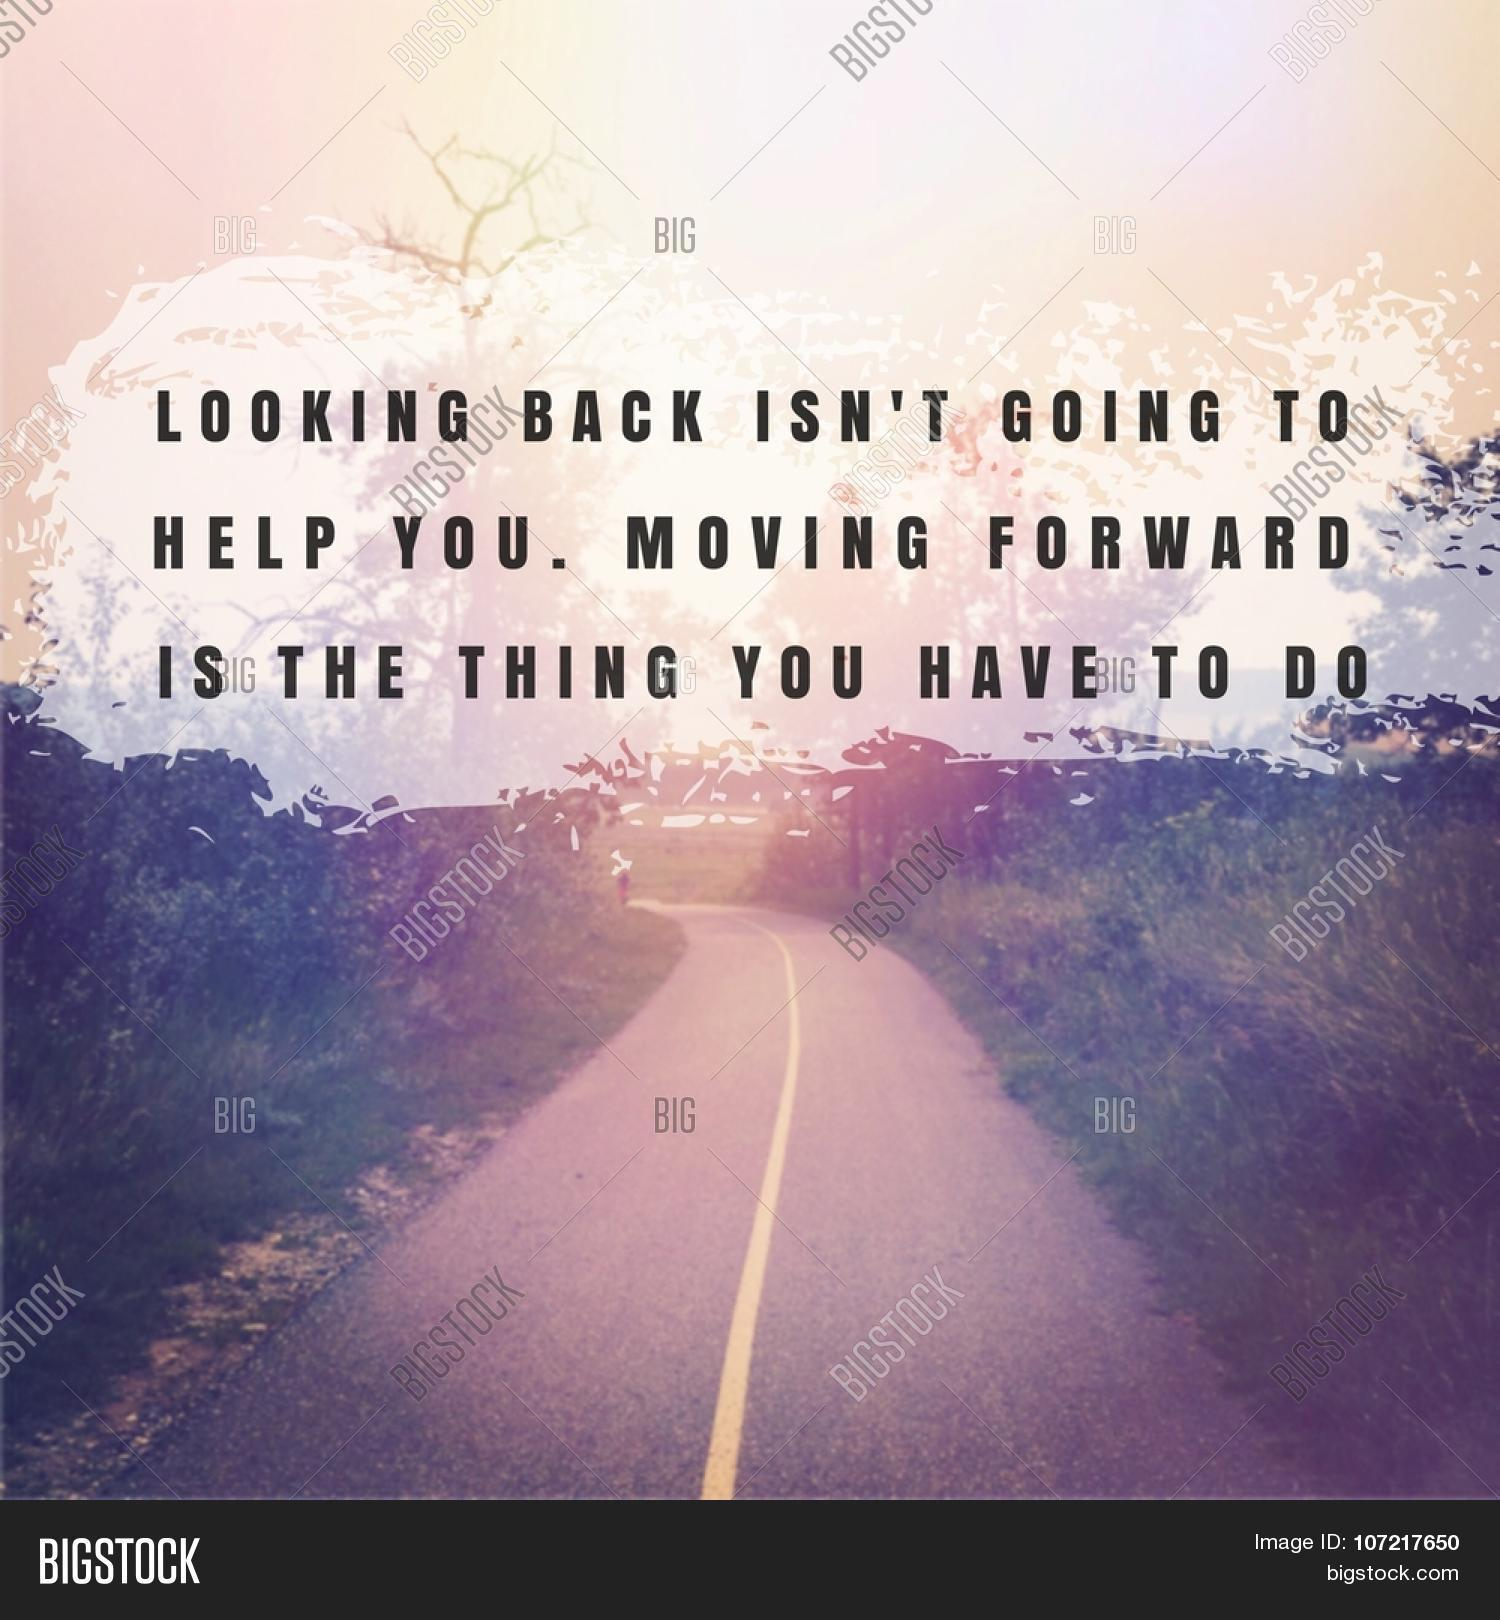 Looking Forward Quotes Inspirational Typographic Quote  Image & Photo  Bigstock